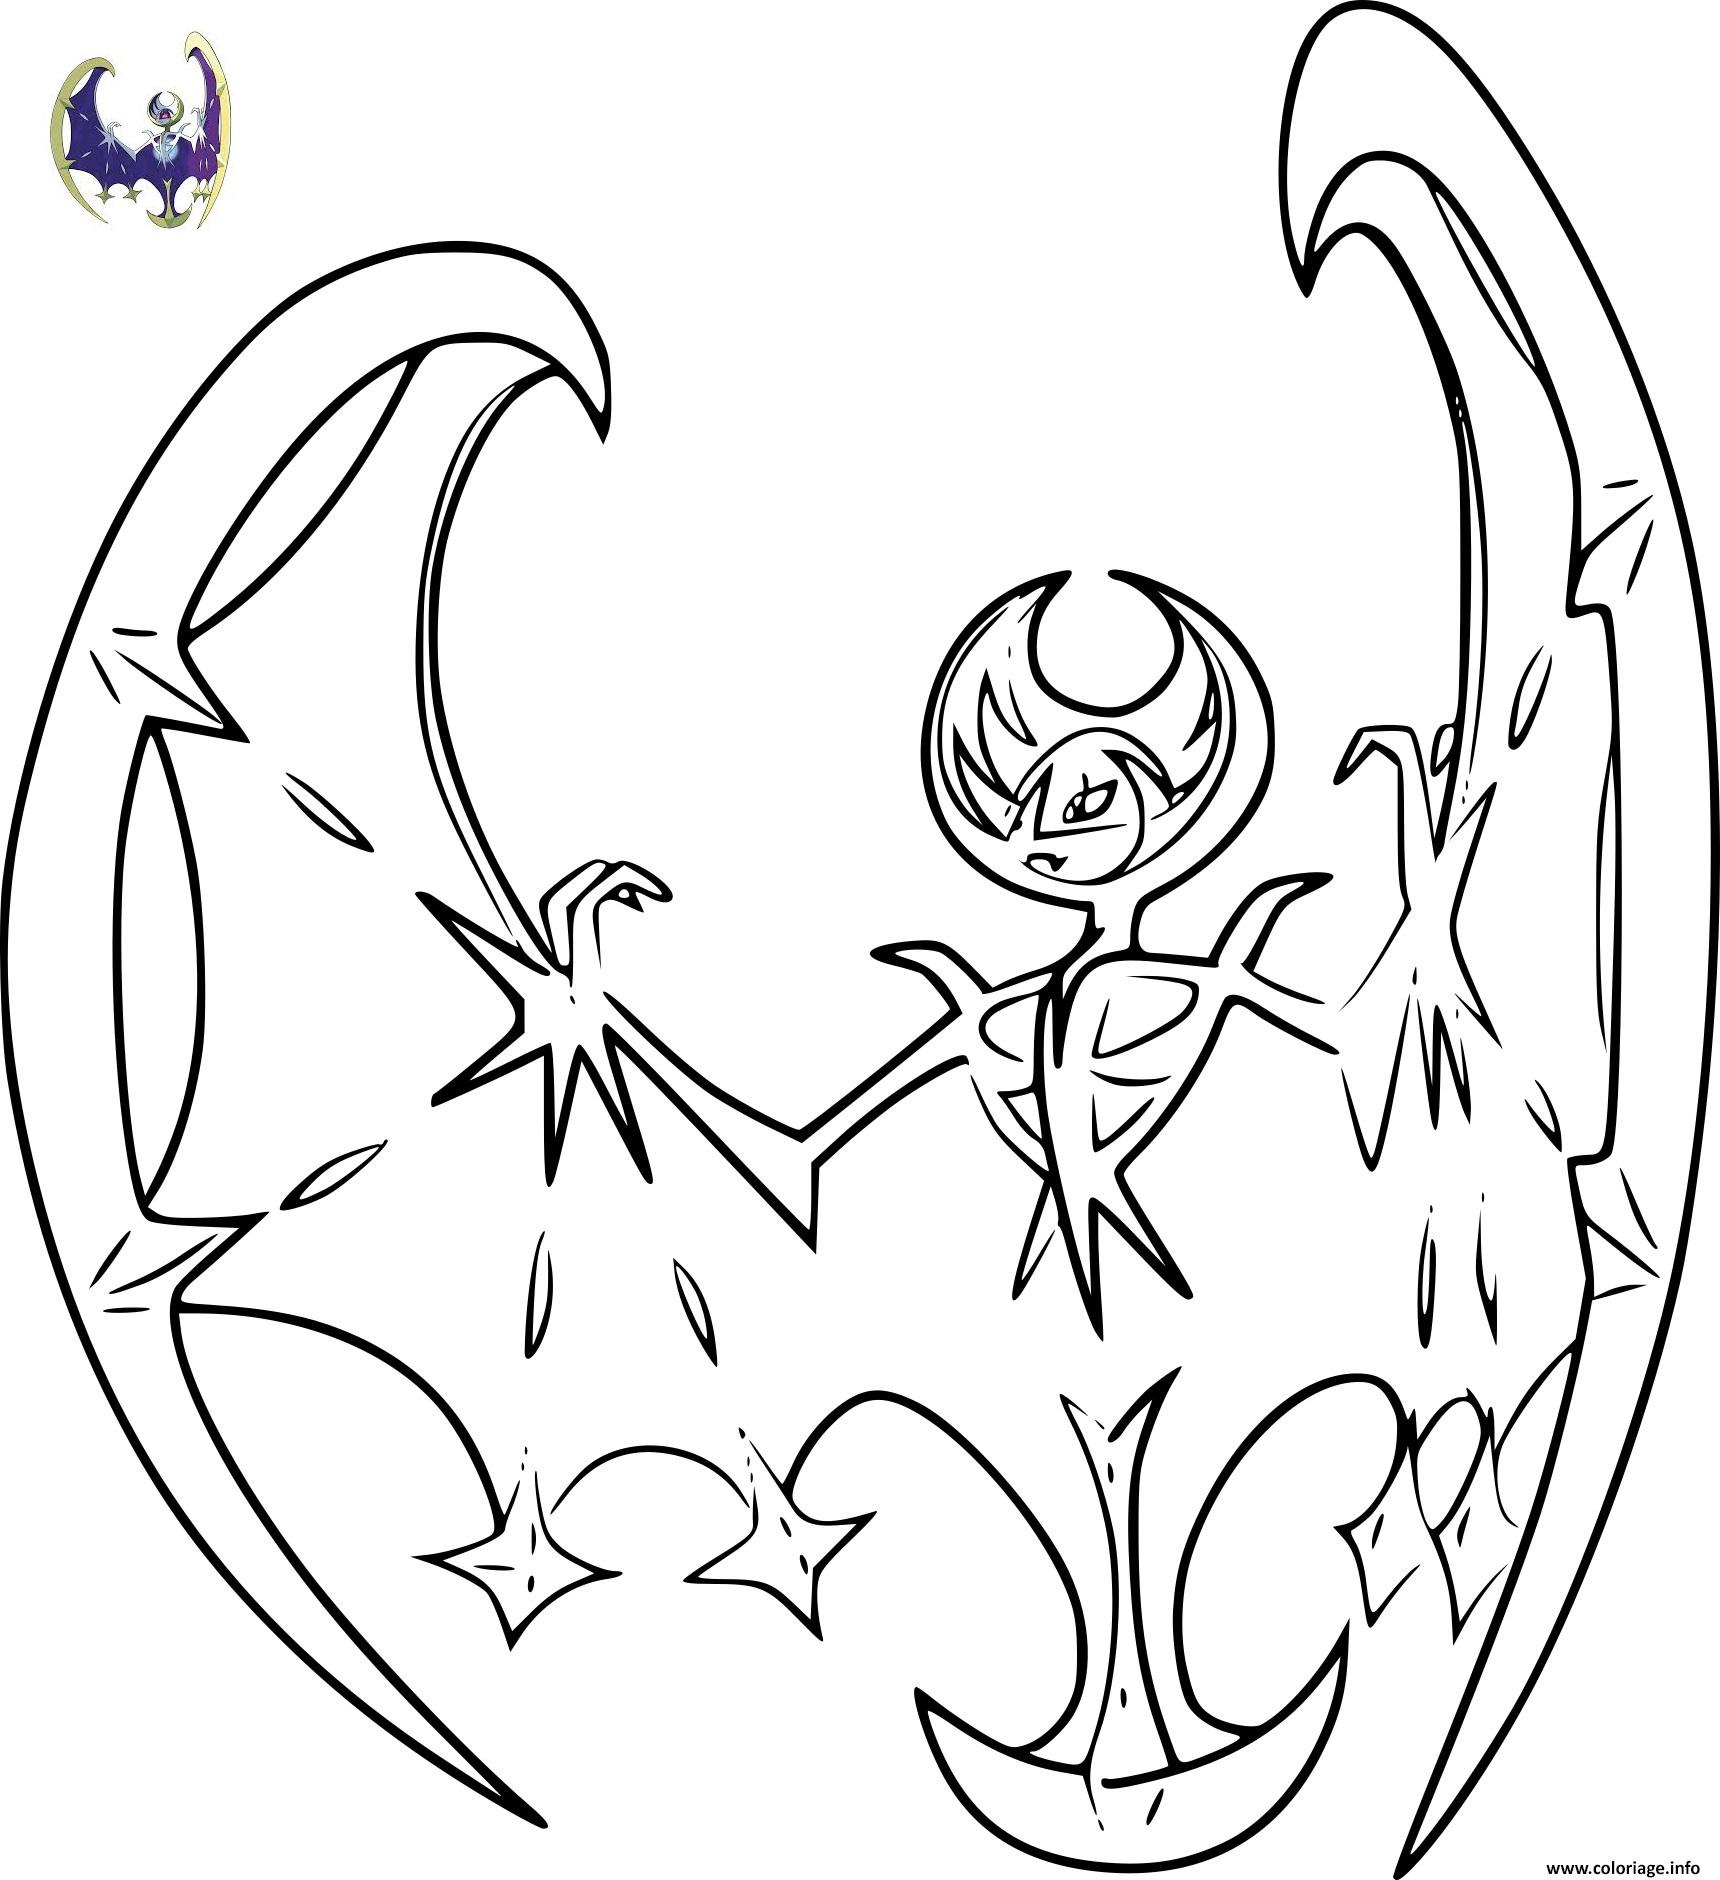 coloriage pokemon lunala. Black Bedroom Furniture Sets. Home Design Ideas